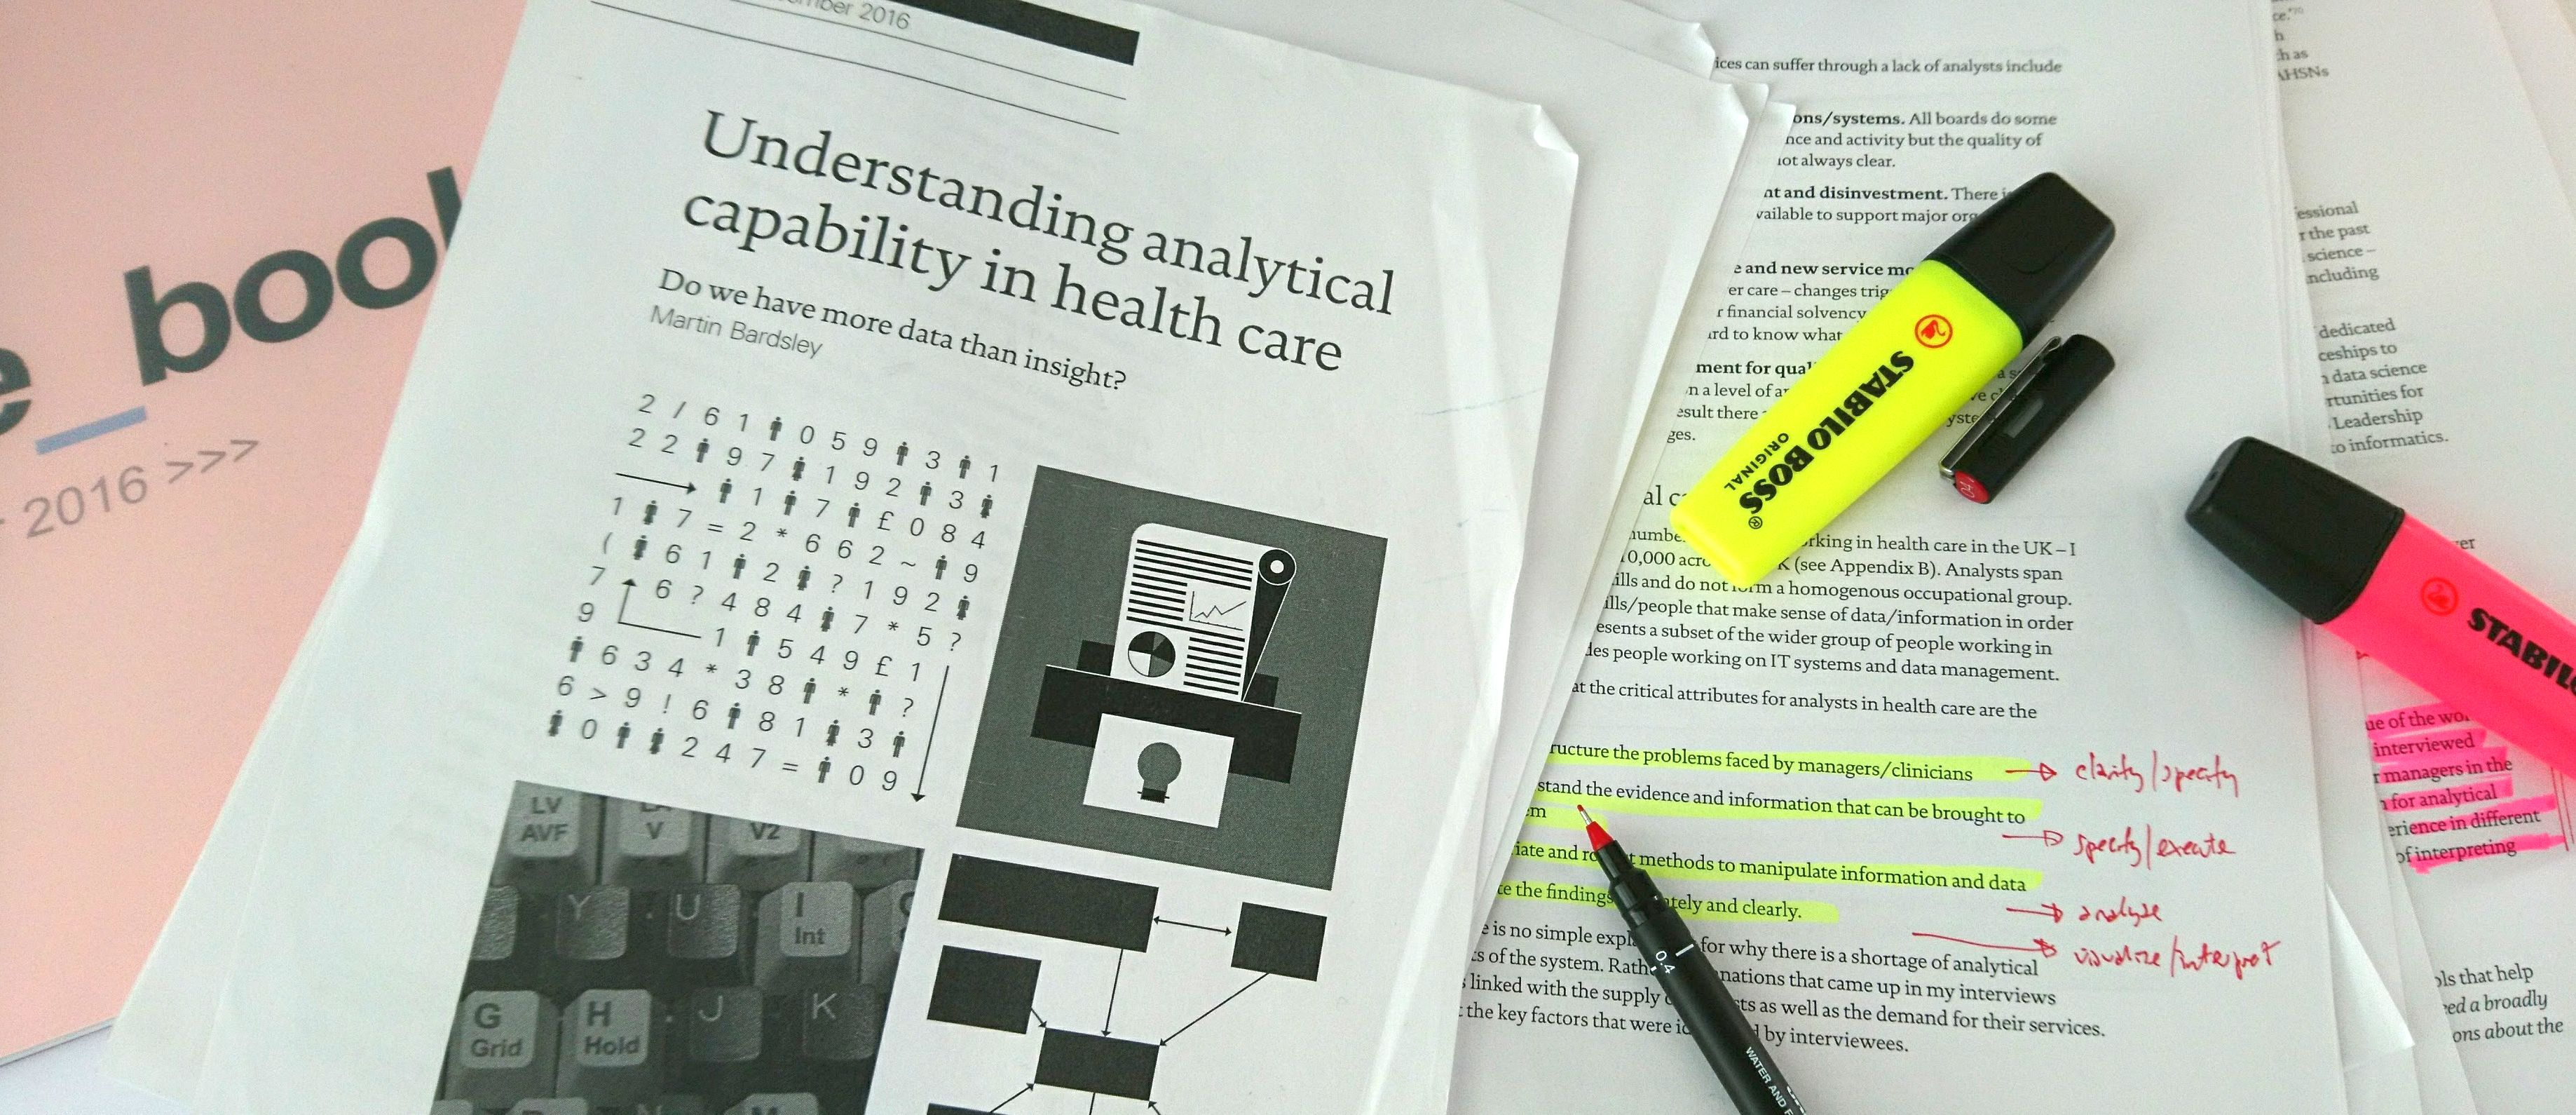 developing analytical capability in health care